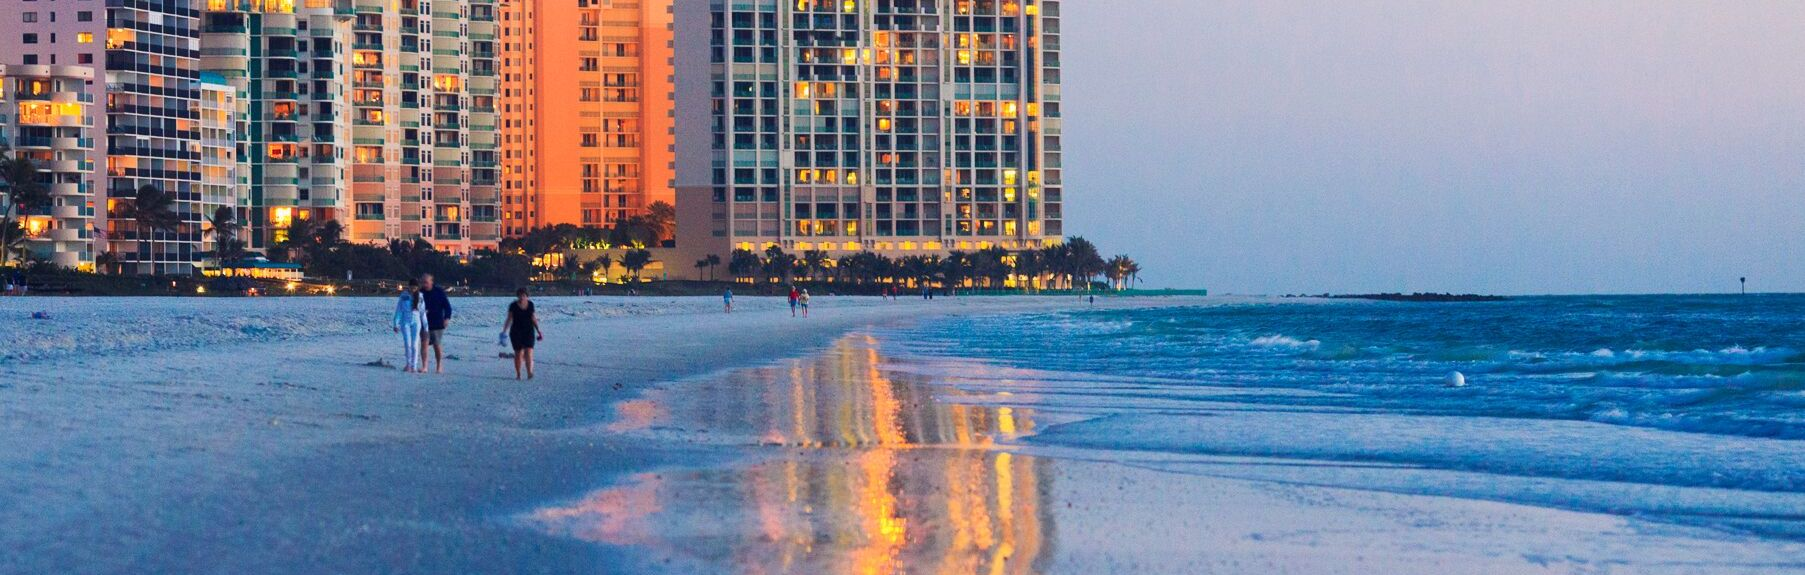 Marco Island, Florida, United States of America